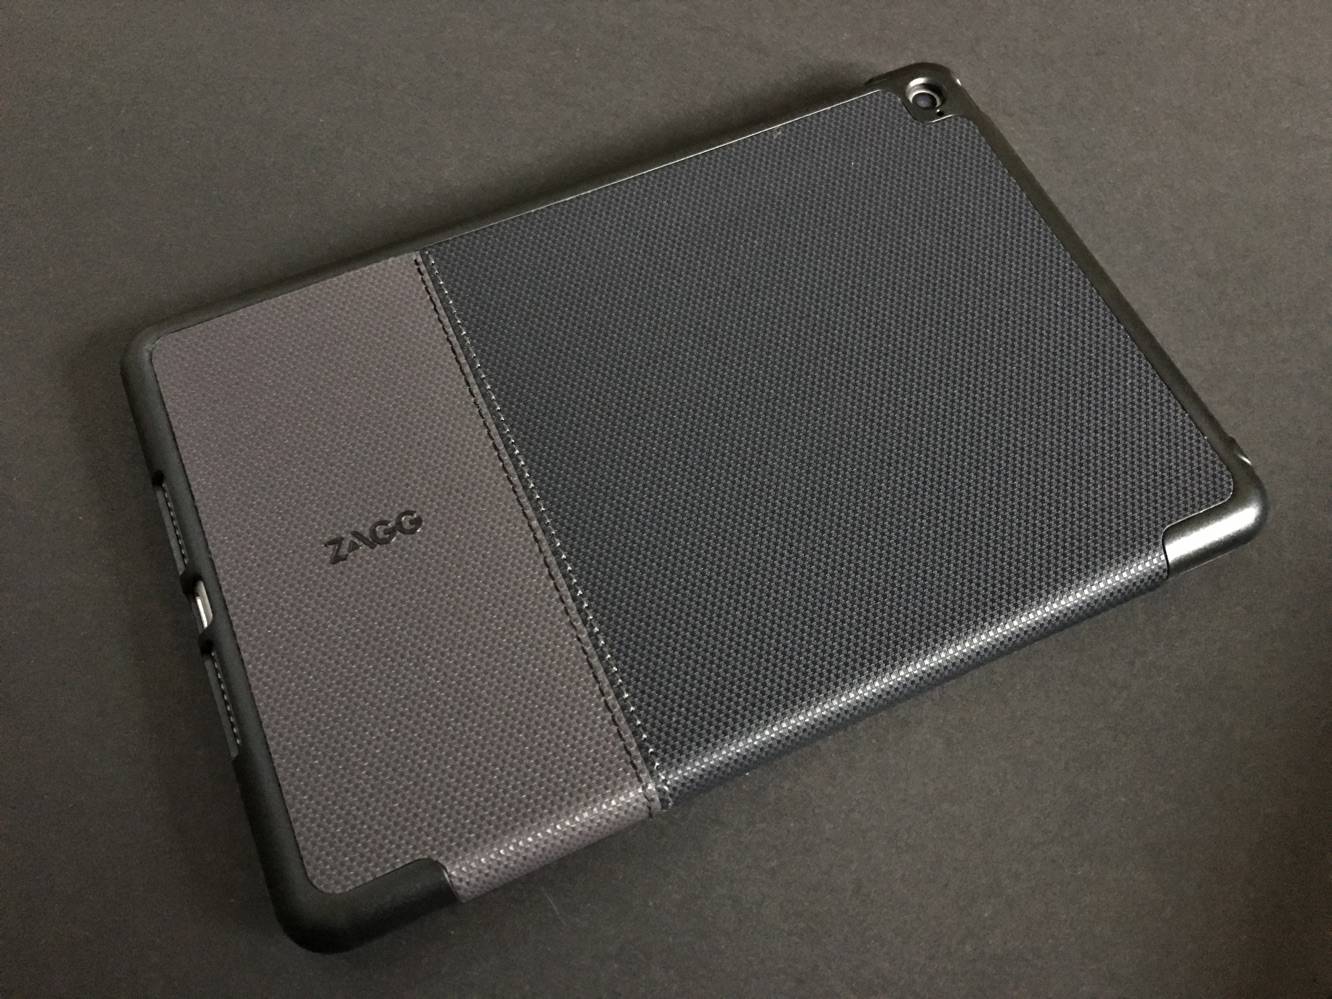 Review: Zagg Folio Case with Keyboard for iPad mini 4